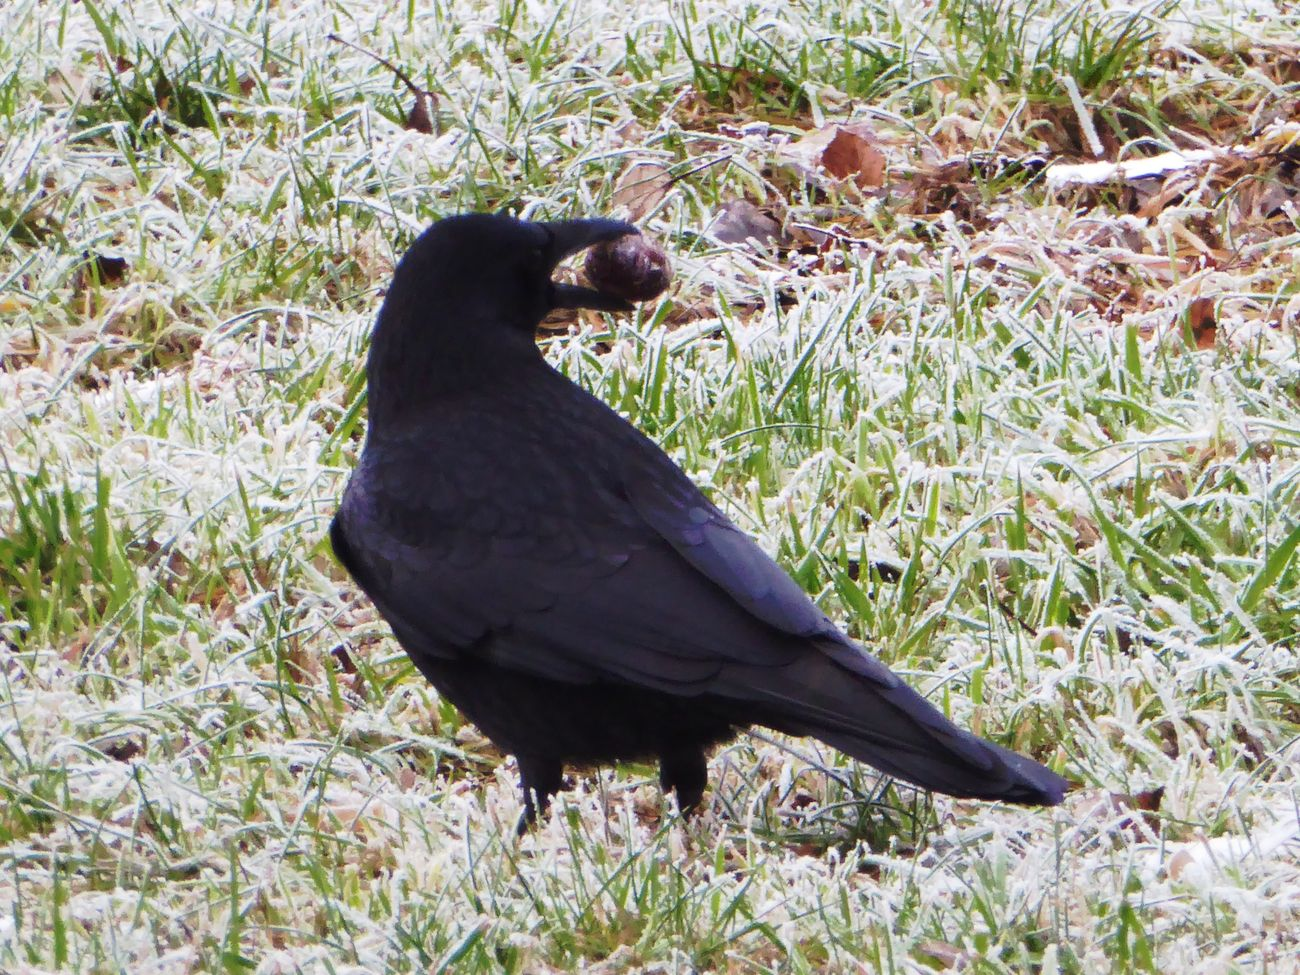 Frozen Ground Beauty In My Every Day Life For My Friends 😍😘🎁 Crow Playing Animals In The WildBrrrrrrrrr❄❄❄❄ Beauty In Winter😍 Frosty ⛄ Cold Outside ❄⛄  Wintertime ⛄ On My Way To Work Close-up Enjoying The View Crowlovers Animal Wildlife Nature